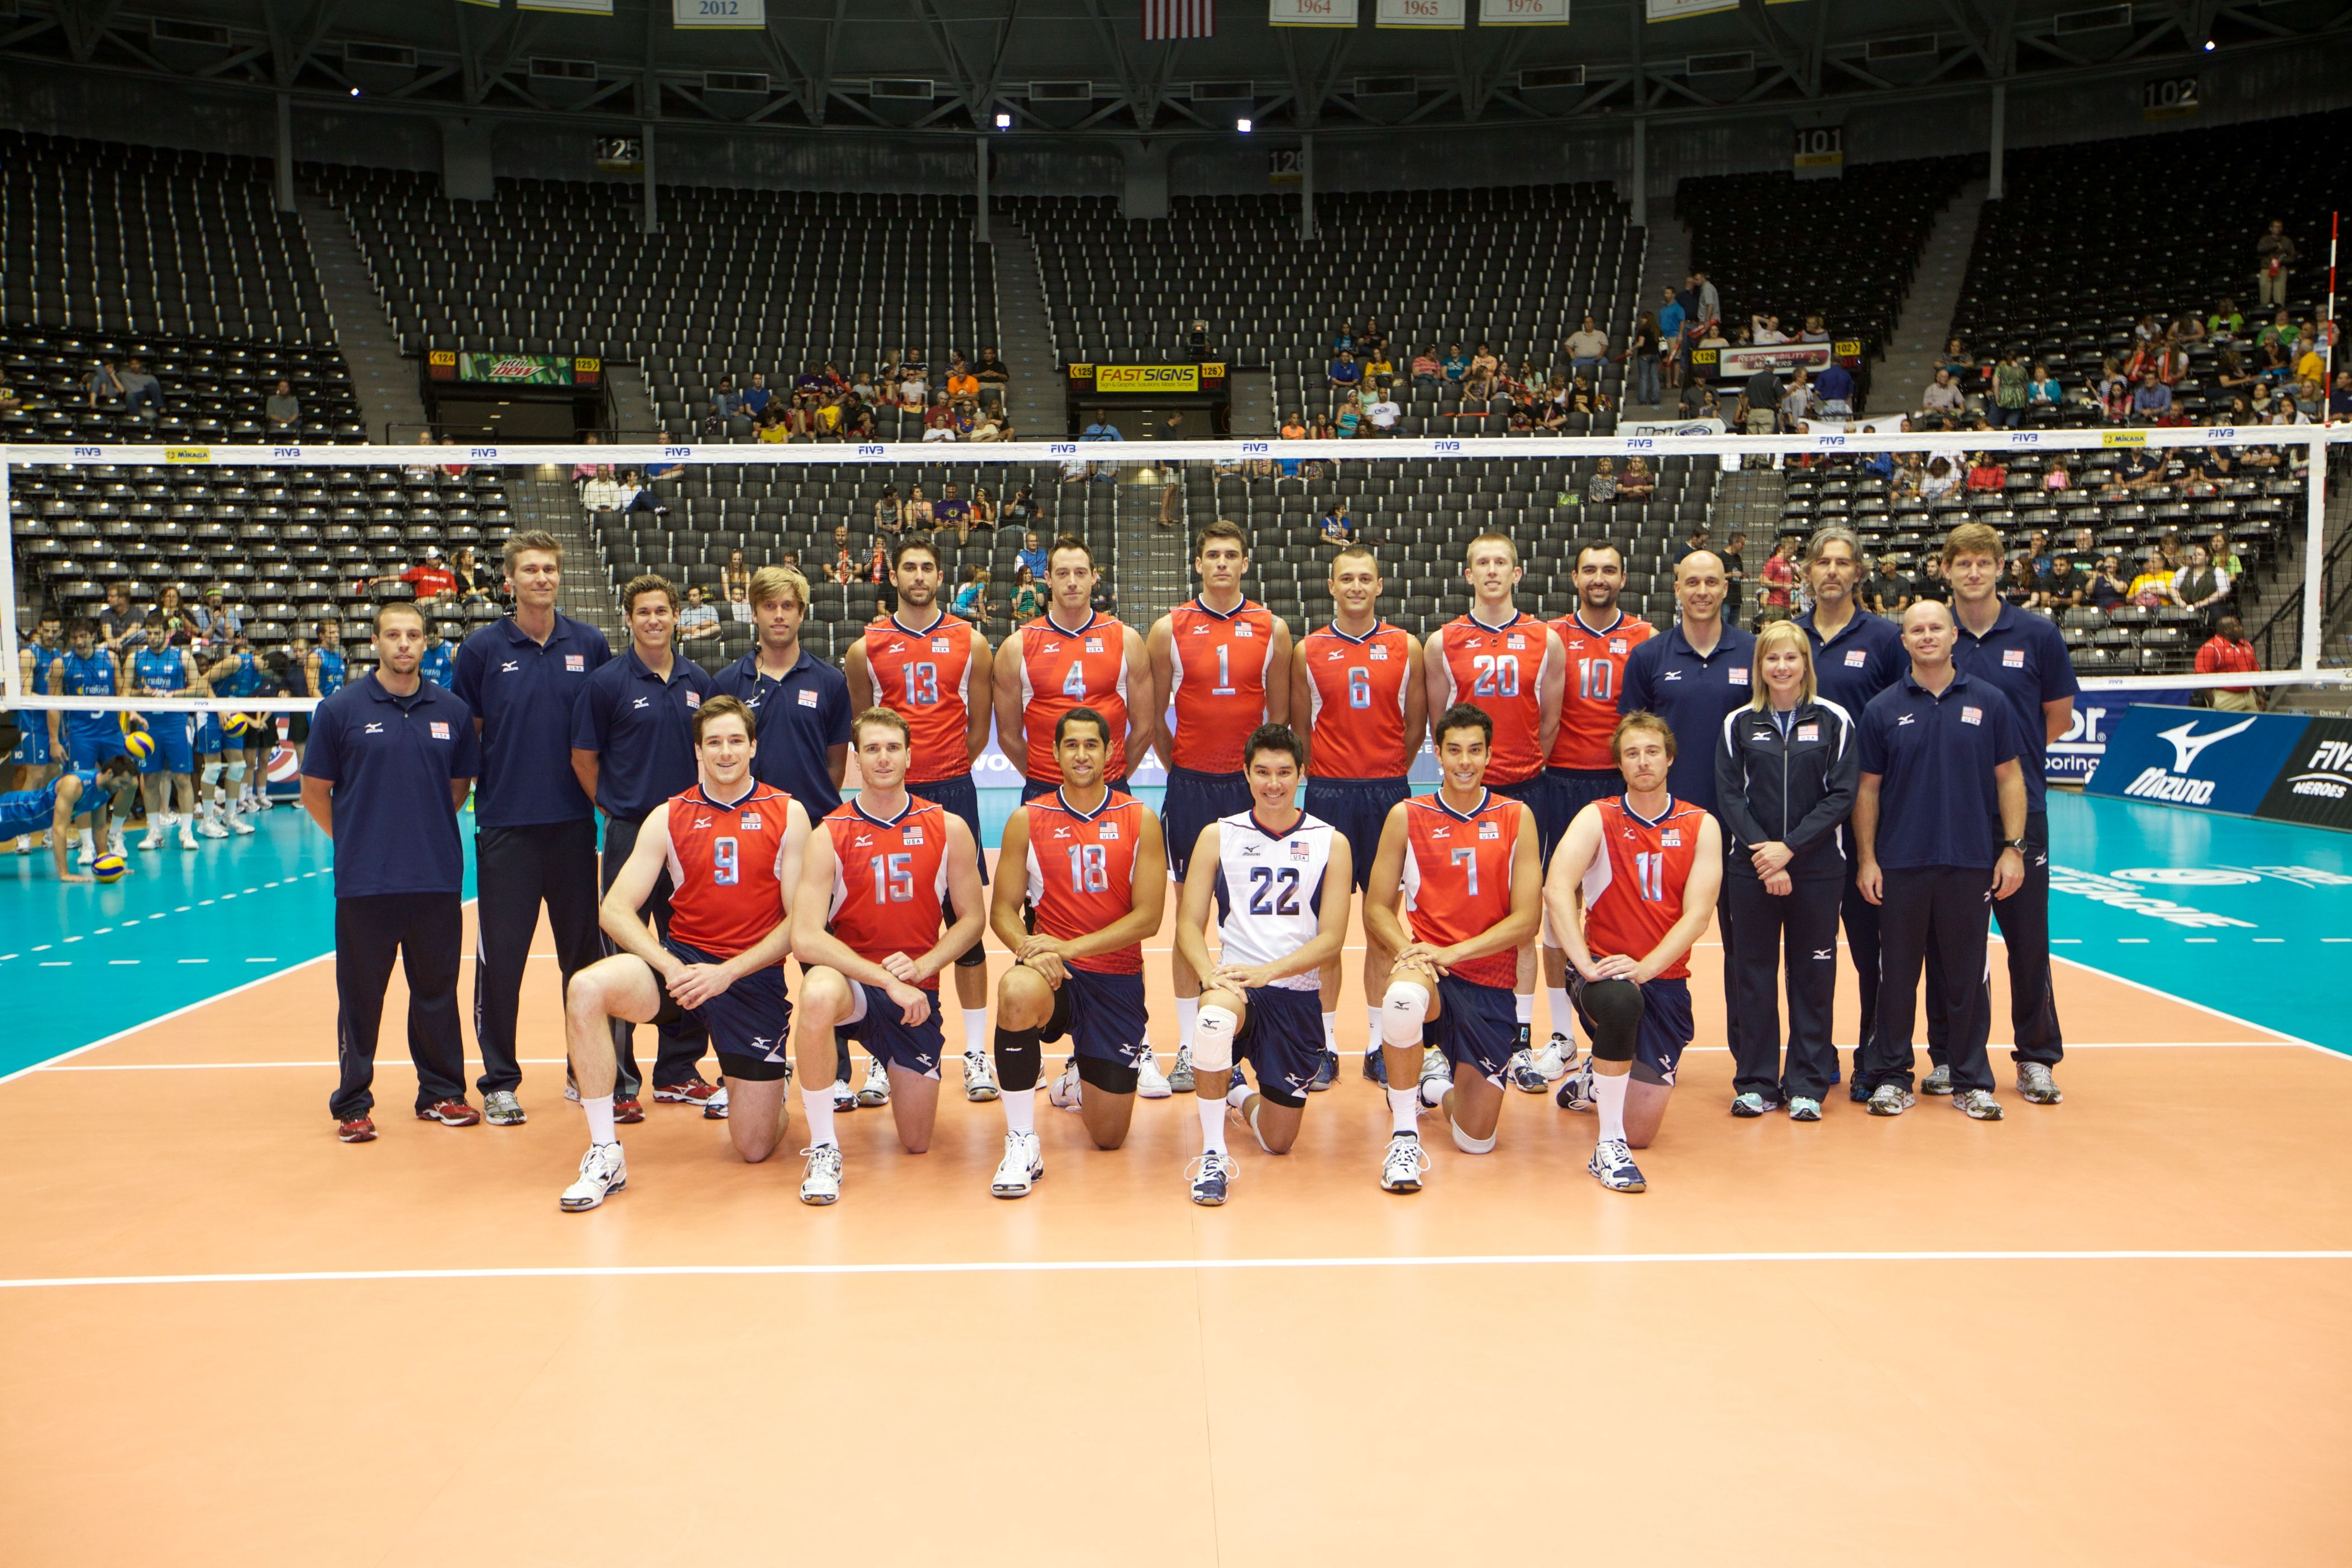 Check Out This Teck To Learn More About The Usa Men S Volleyball Team Mens Volleyball Usa Volleyball Volleyball Team